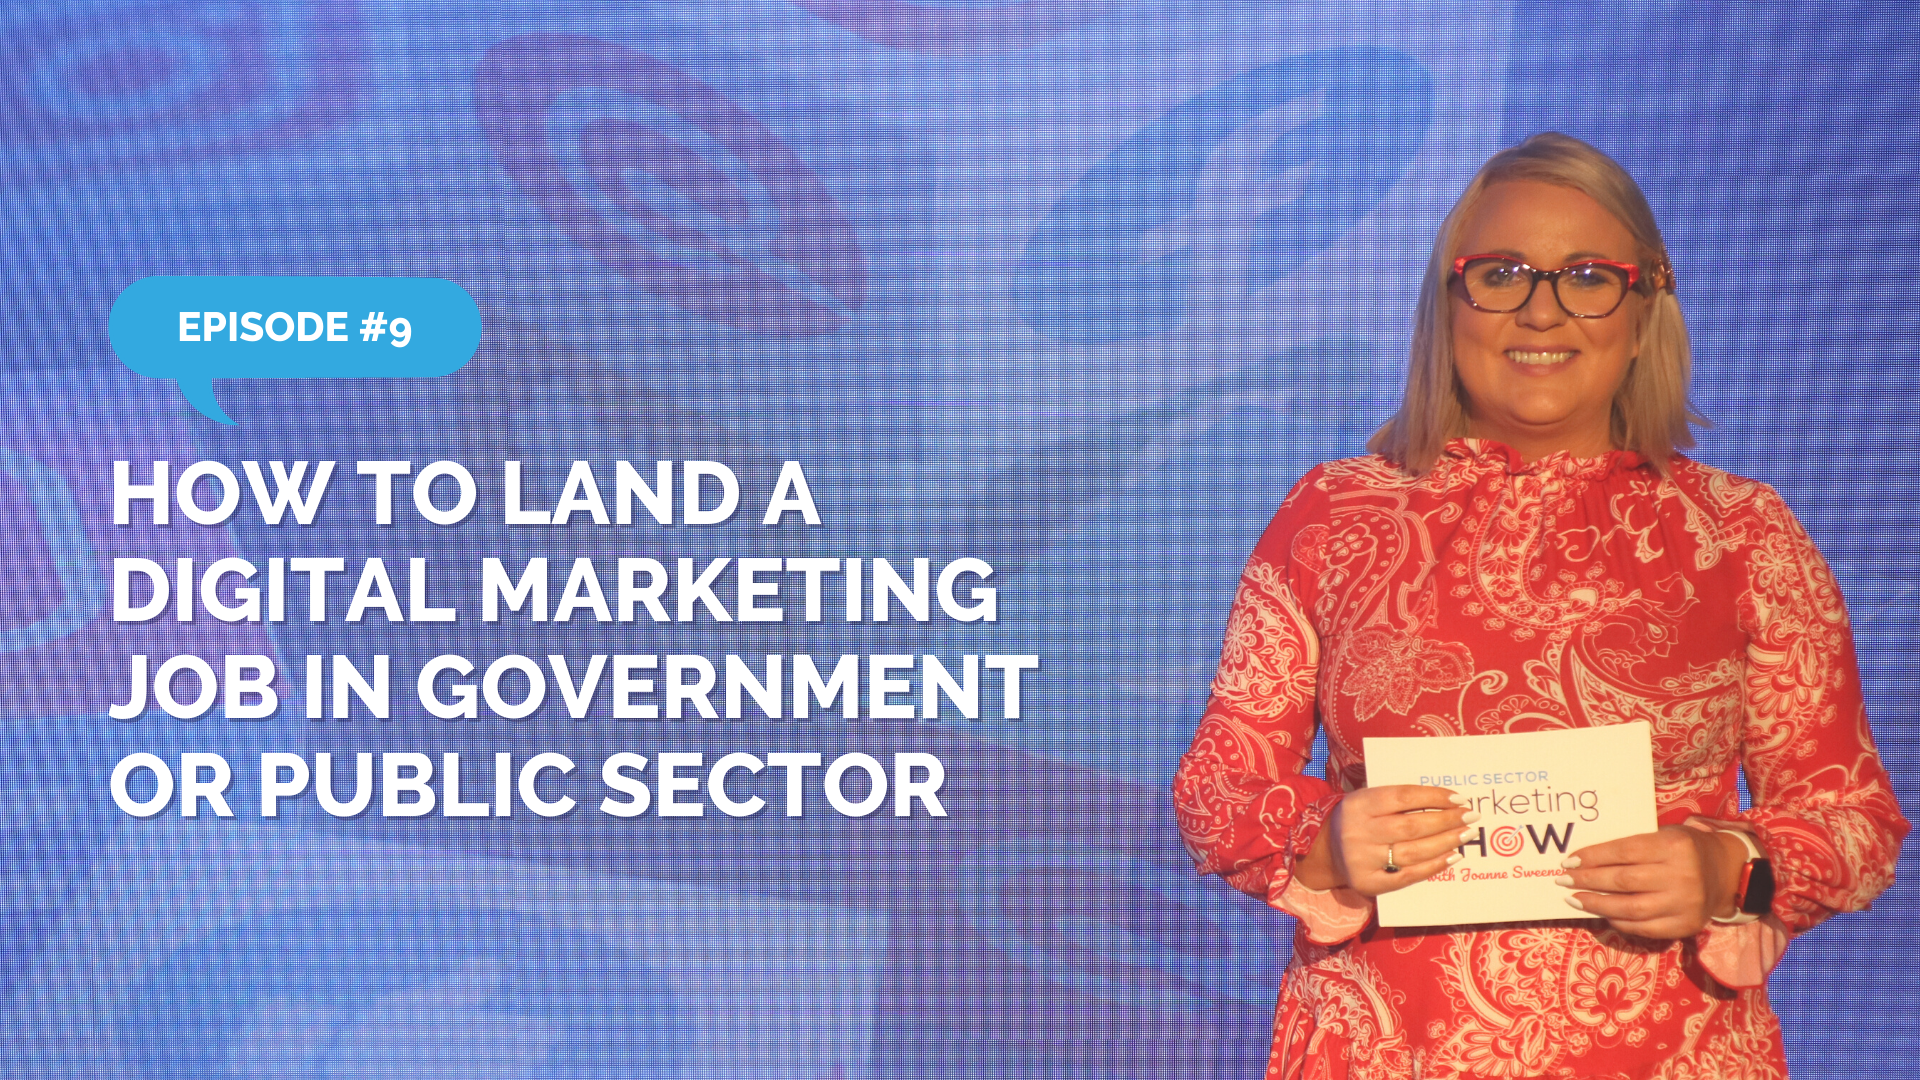 Episode 9 - How to Land a Digital Marketing Job in Government or Public Sector